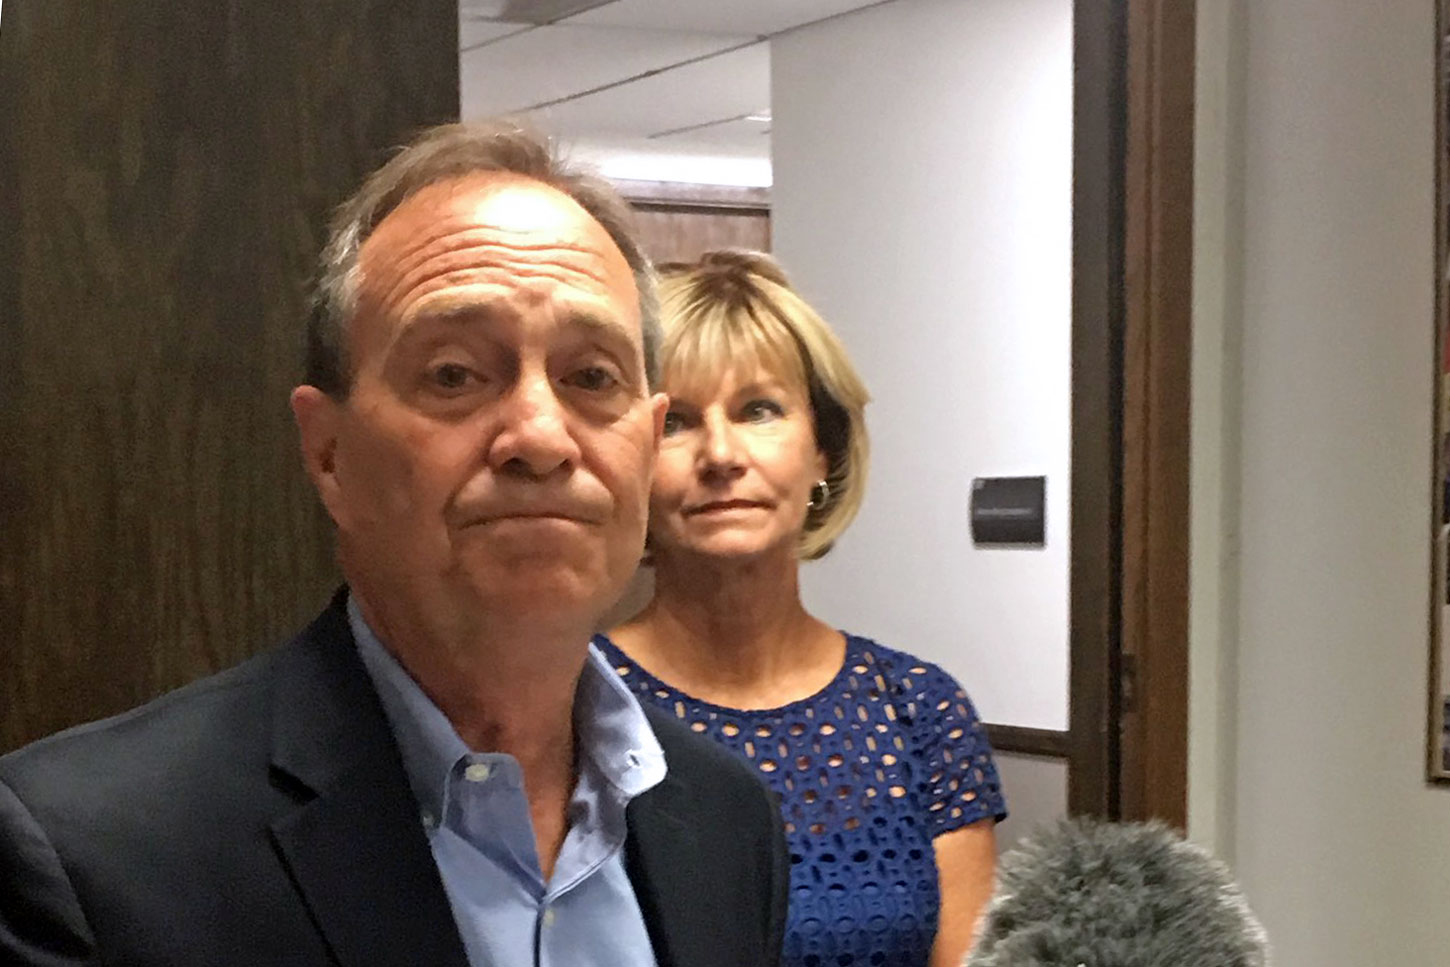 Photo: Ed Perlmutter Bows Out of Colorado Govs Race - ASherry